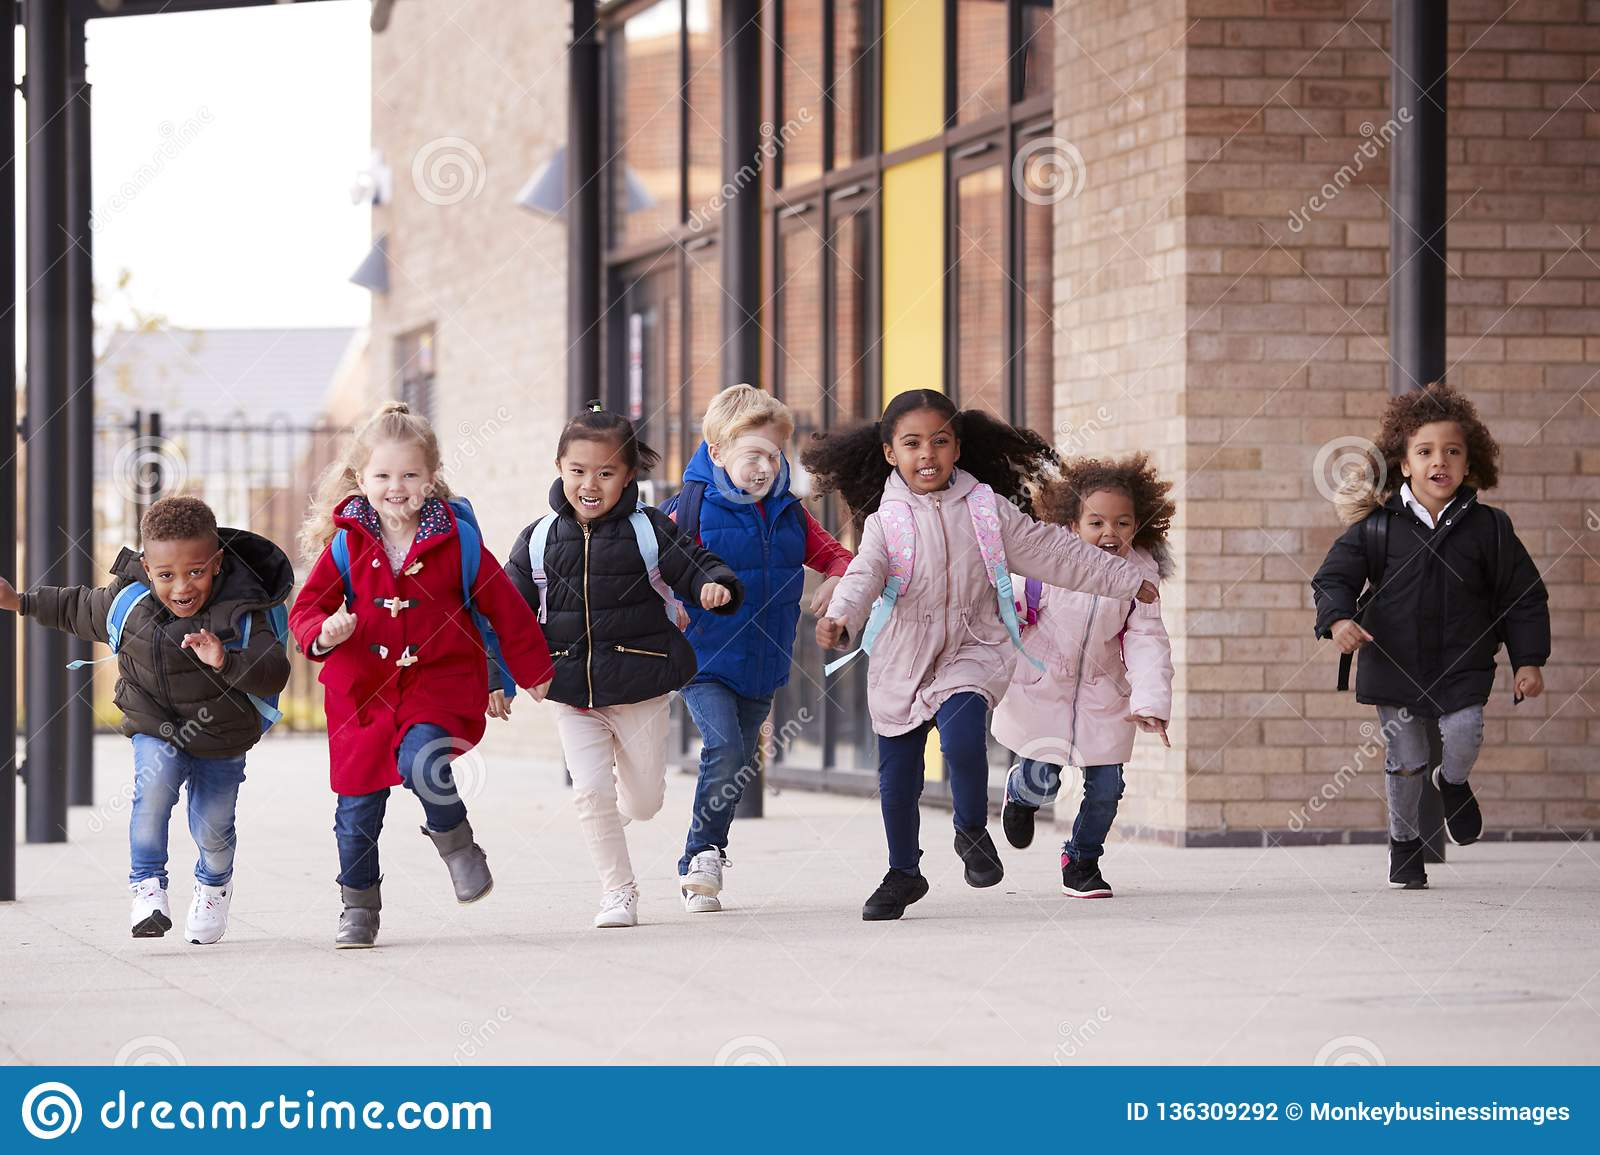 A happy multi-ethnic group of young school kids wearing coats and carrying schoolbags running in a walkway with their classmates o